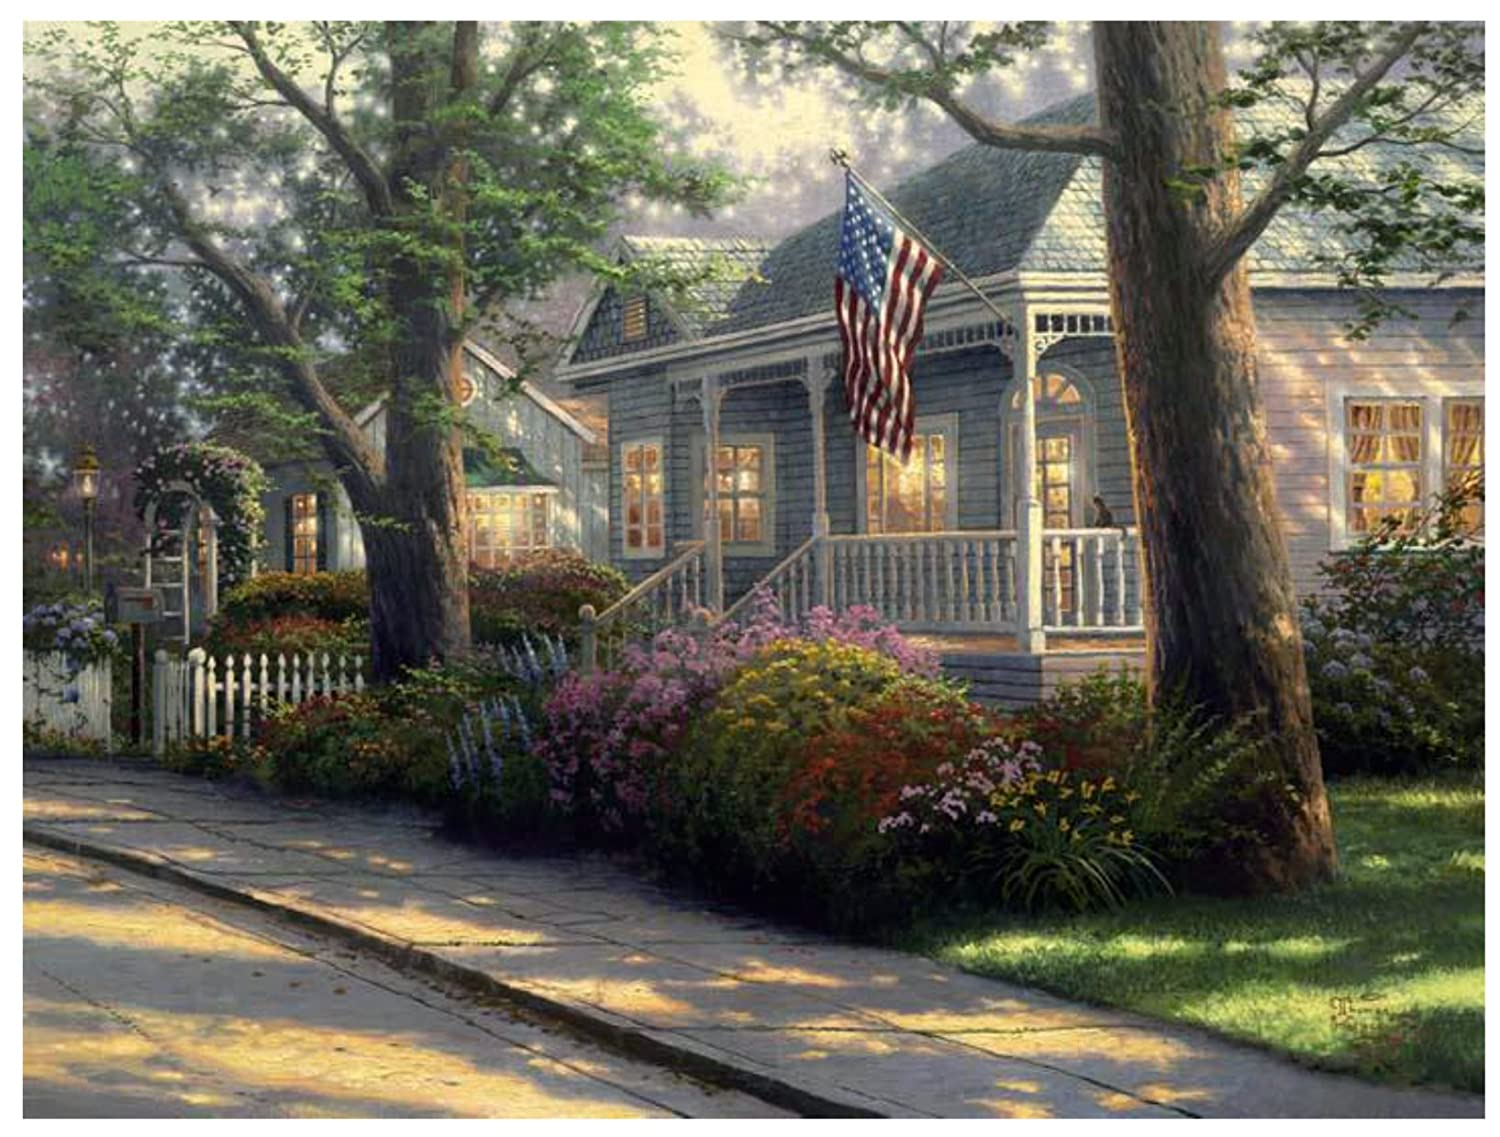 Plaid Thomas Kinkade Series Paint by Number Kit, 20-Inch by 16-Inch, Hometown Pride